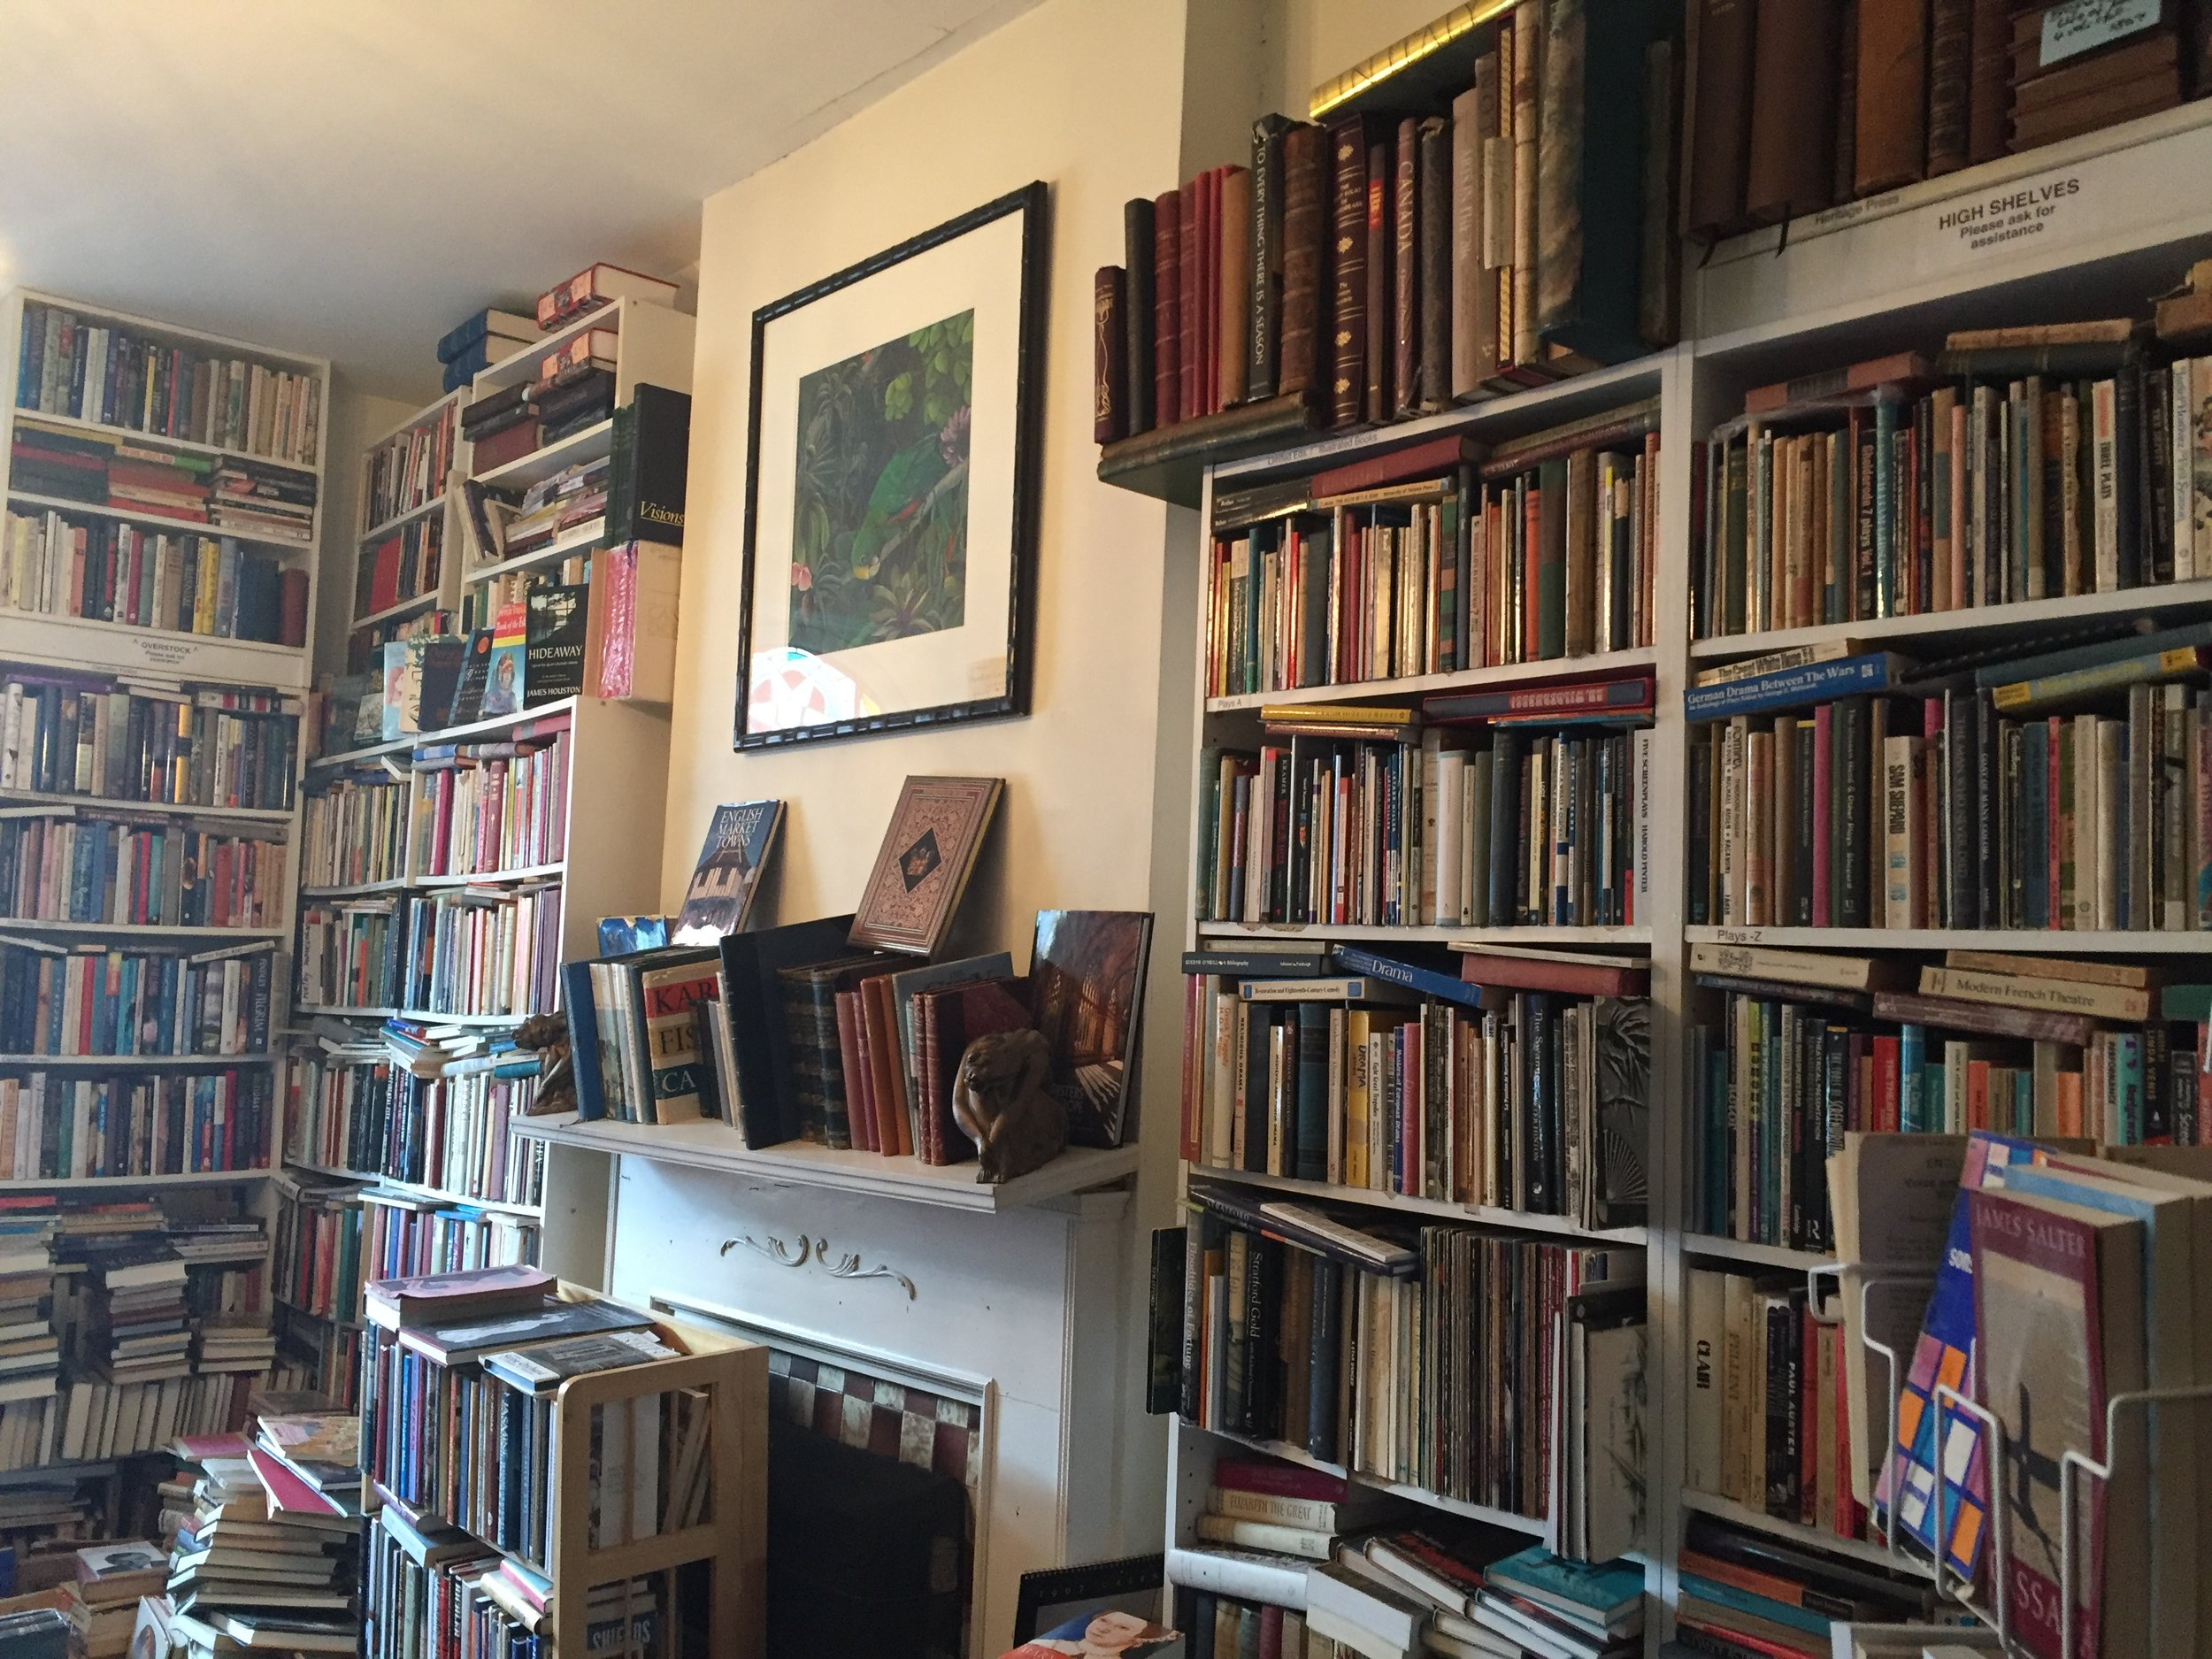 [image description: A view of the wall with the mantle. There's floor to ceiling bookshelves in nearly every part of the photo.]